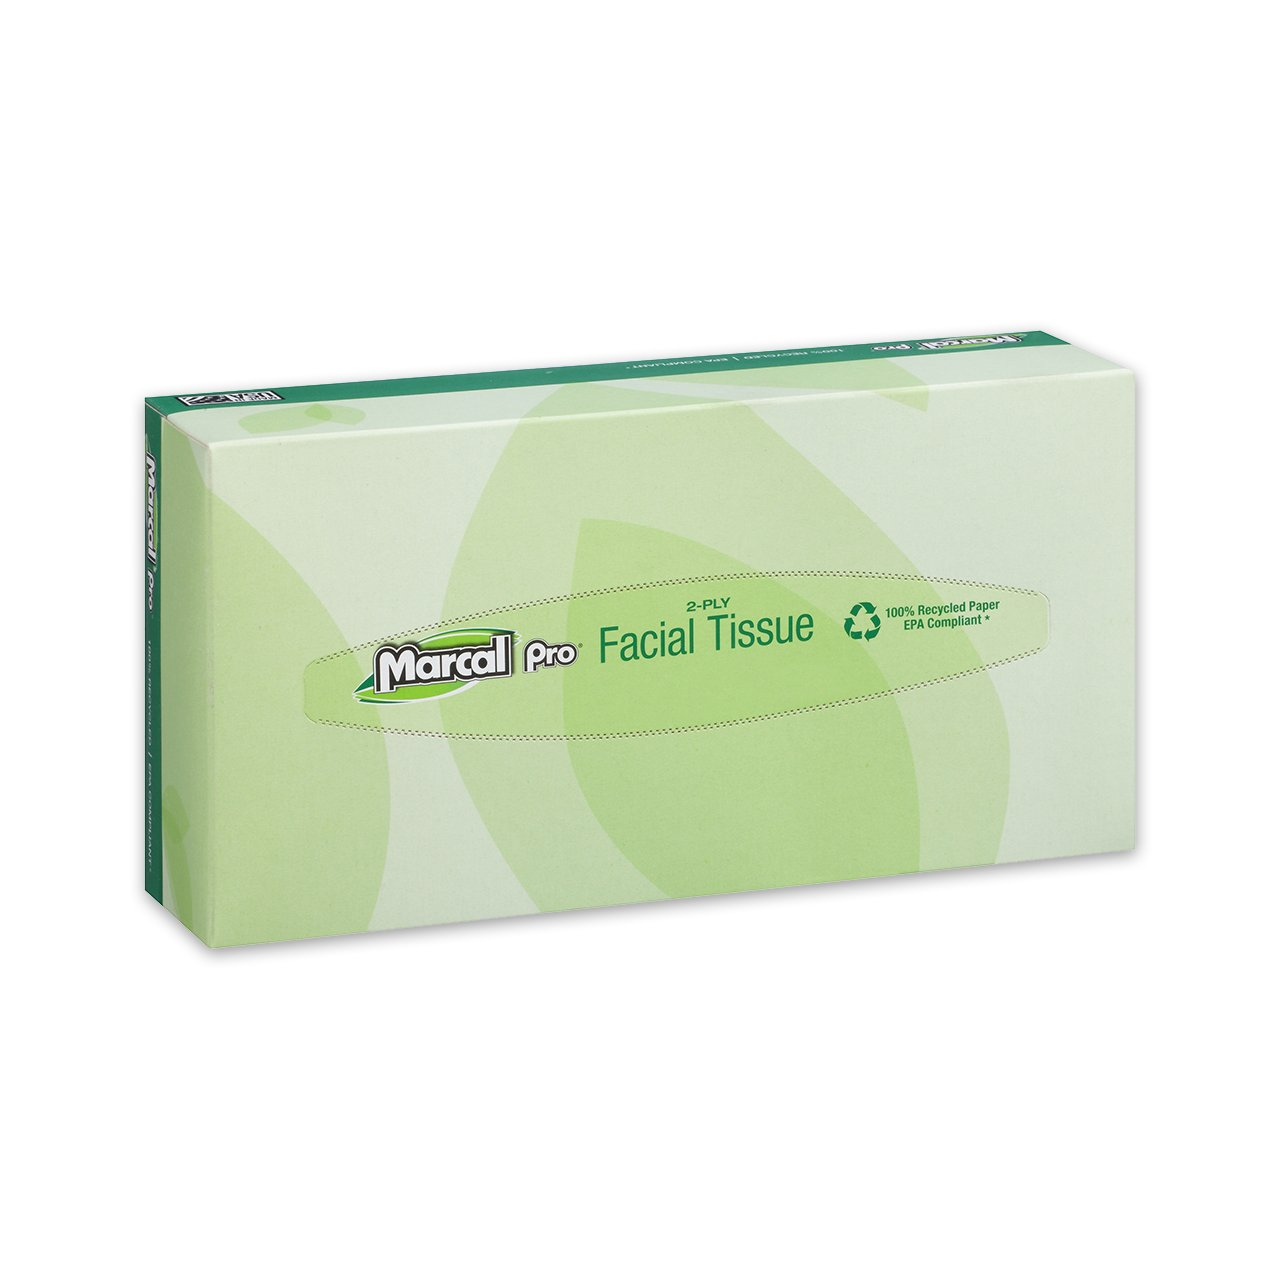 30 Boxes Per Case 02930 100 Tissues in a Flat Tissue Box 100/% Recycled Soft Tissue Paper Marcal Pro Facial Tissue